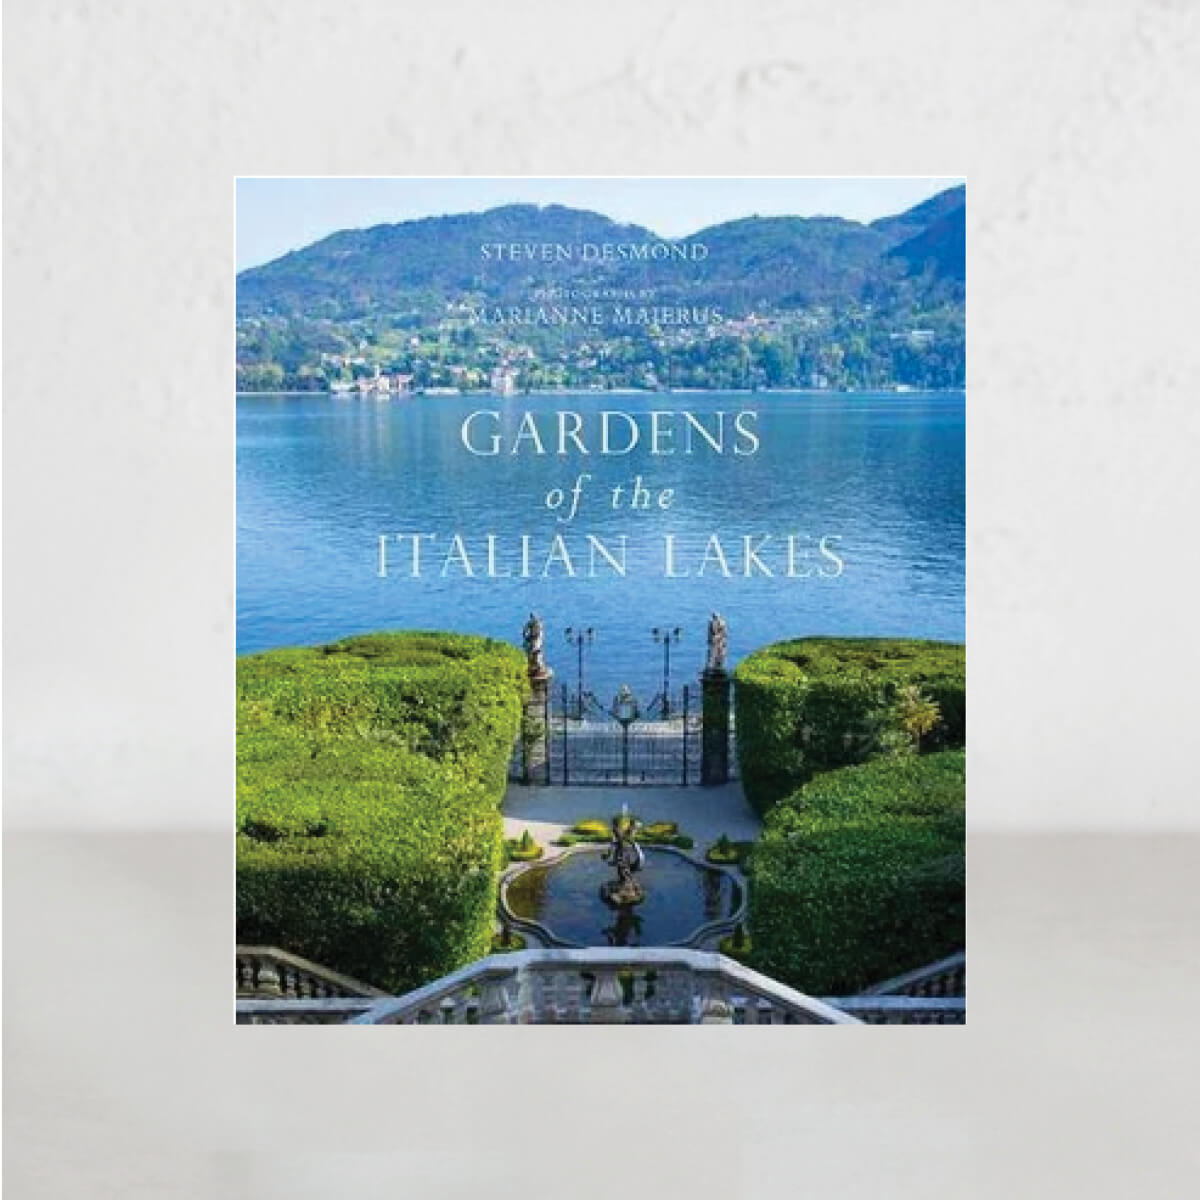 GARDENS OF THE ITALIAN LAKES  |  STEVEN DESMOND